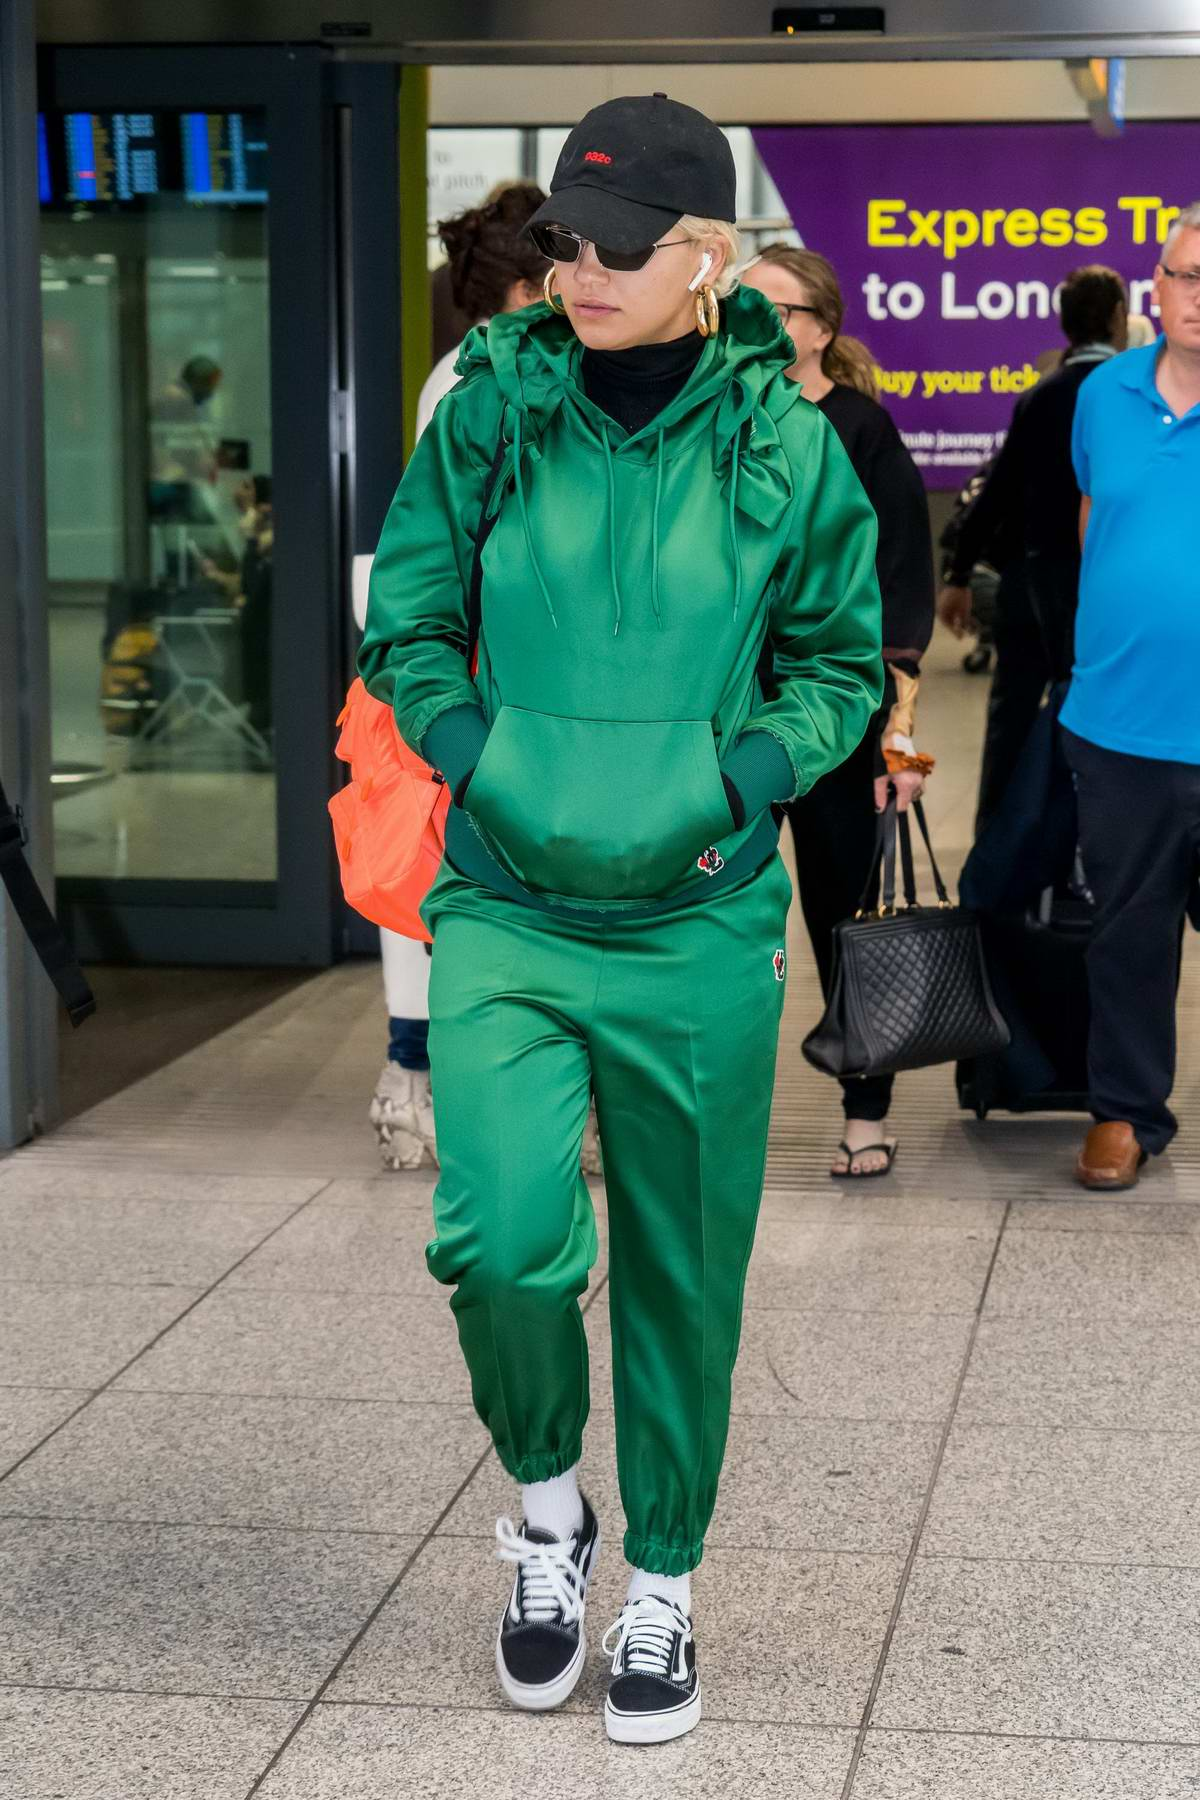 Rita Ora spotted in a green sweatsuit as she touch down at Heathrow airport in London, UK